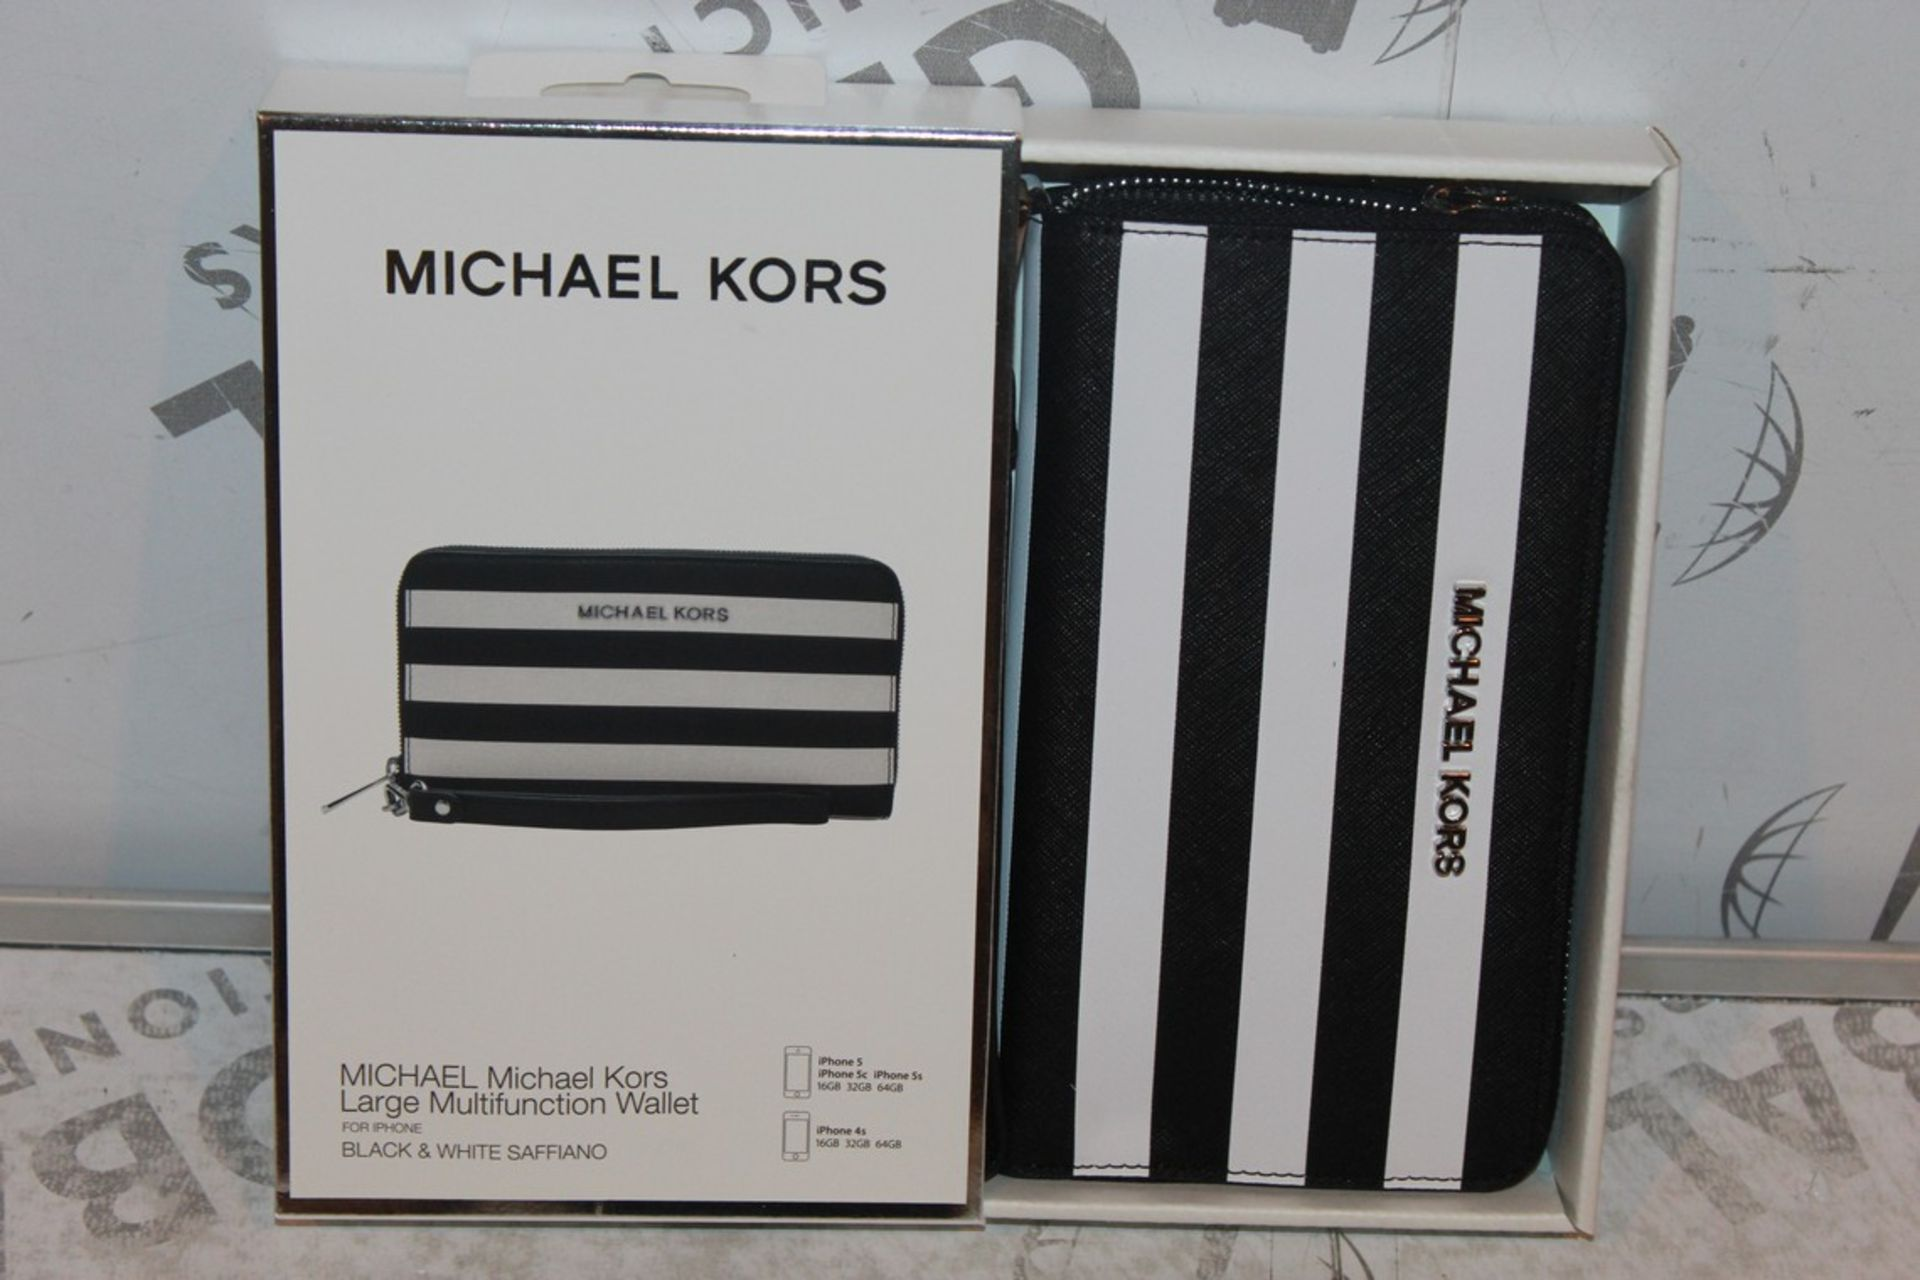 Lot 47 - Boxed Brand-New Michael Kors, Large Multifunction, Black and White Saffiano, Wallet, RRP£55.00